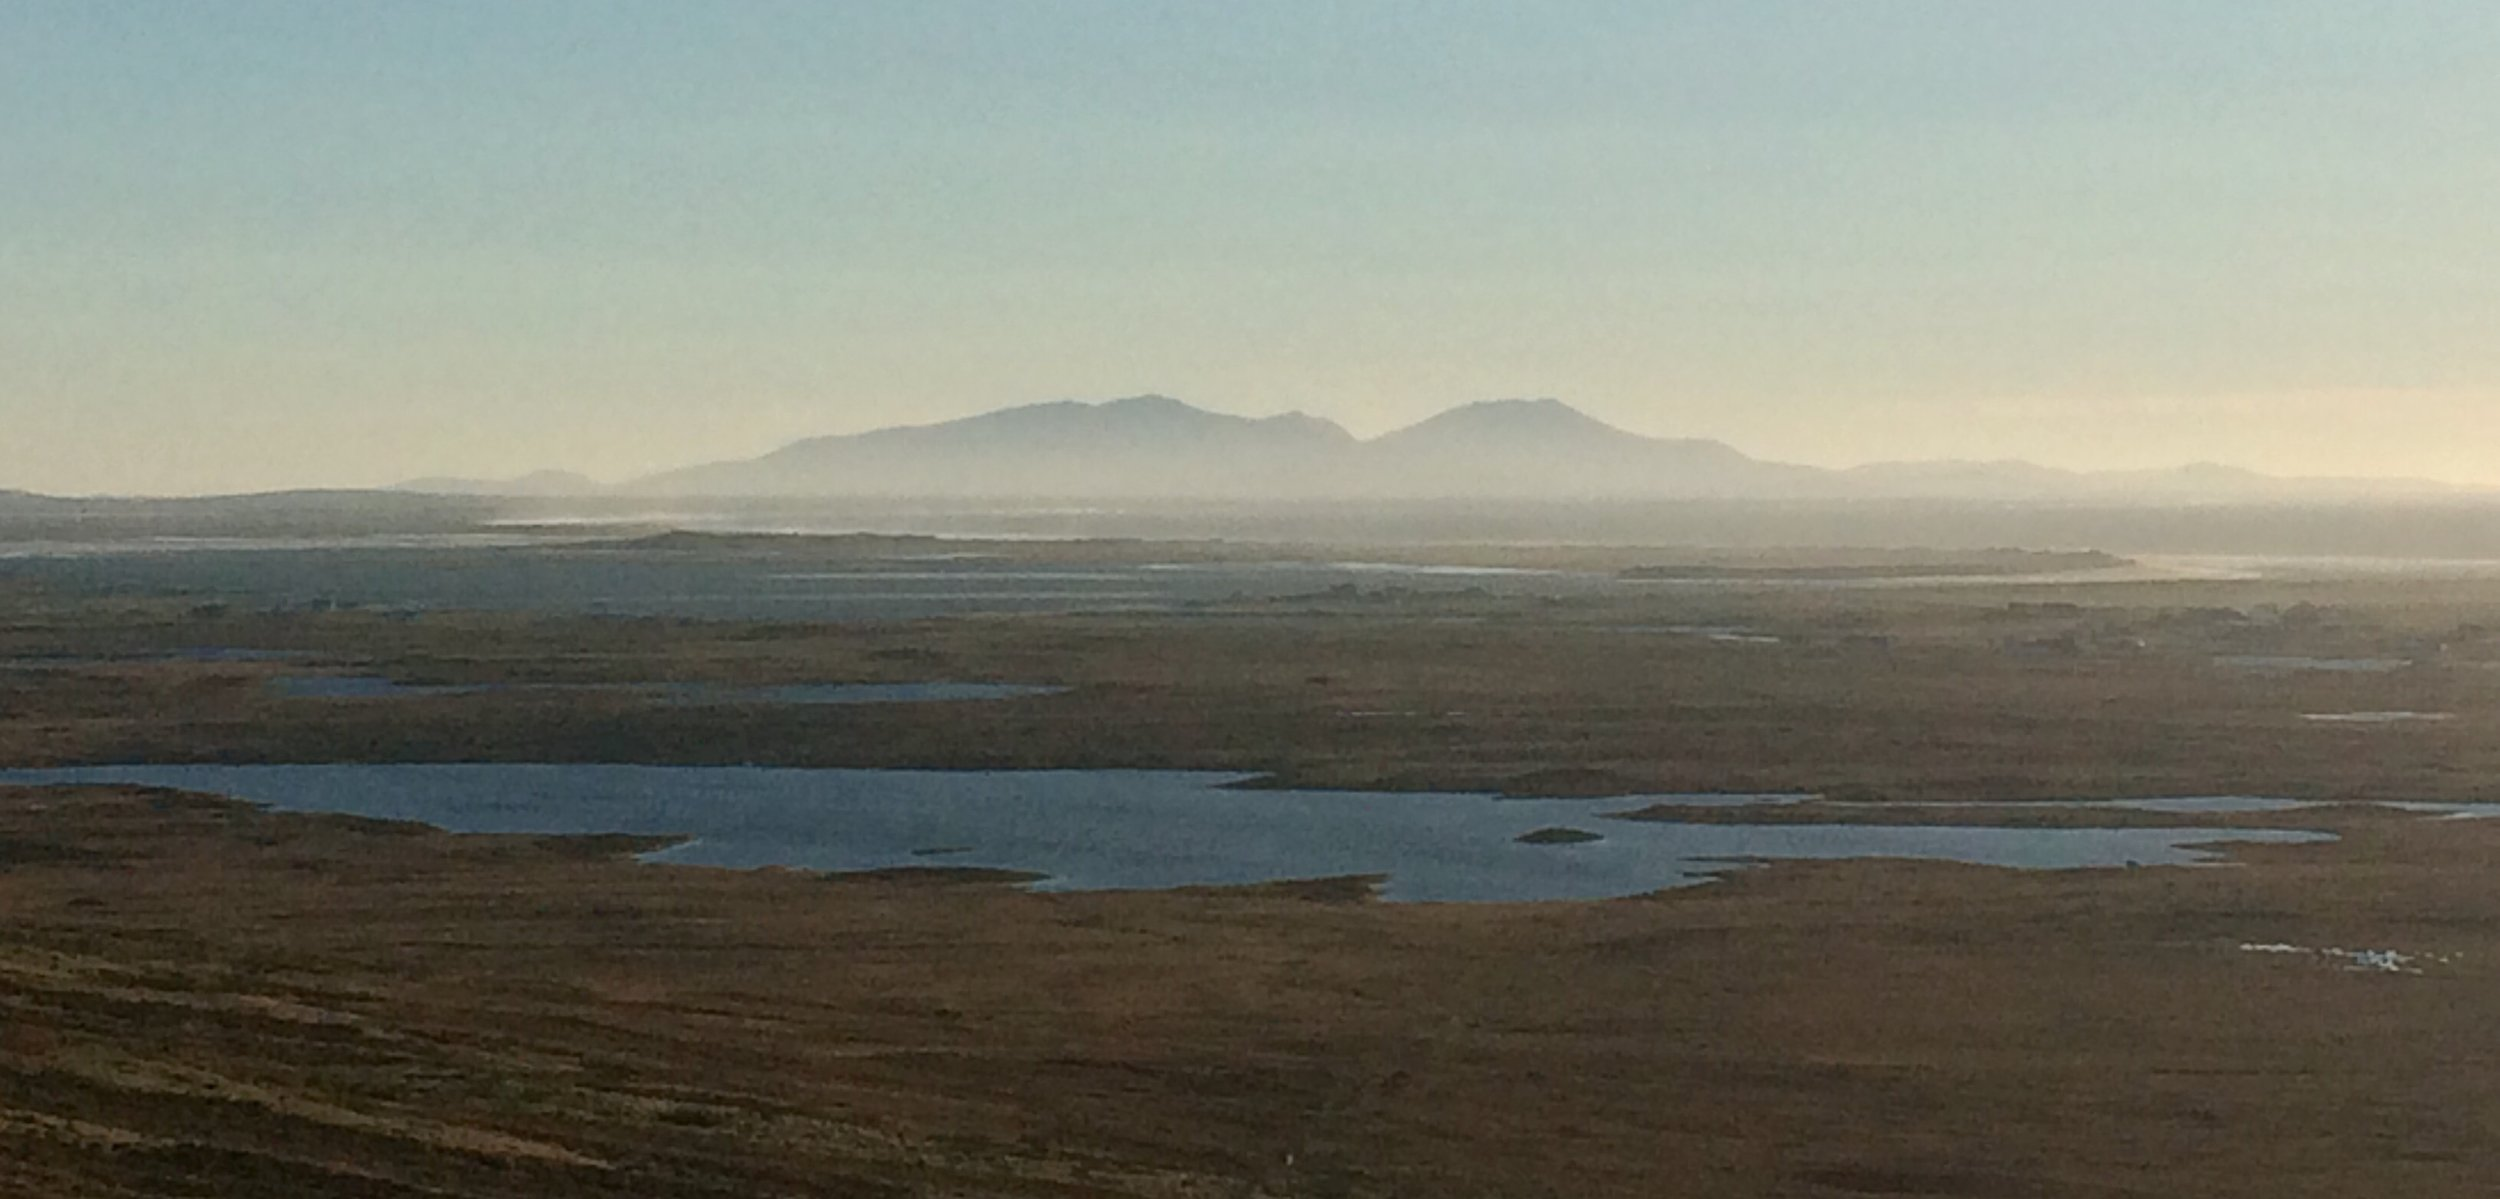 Looking towards South Uist from the St Kilda Viewpoint.